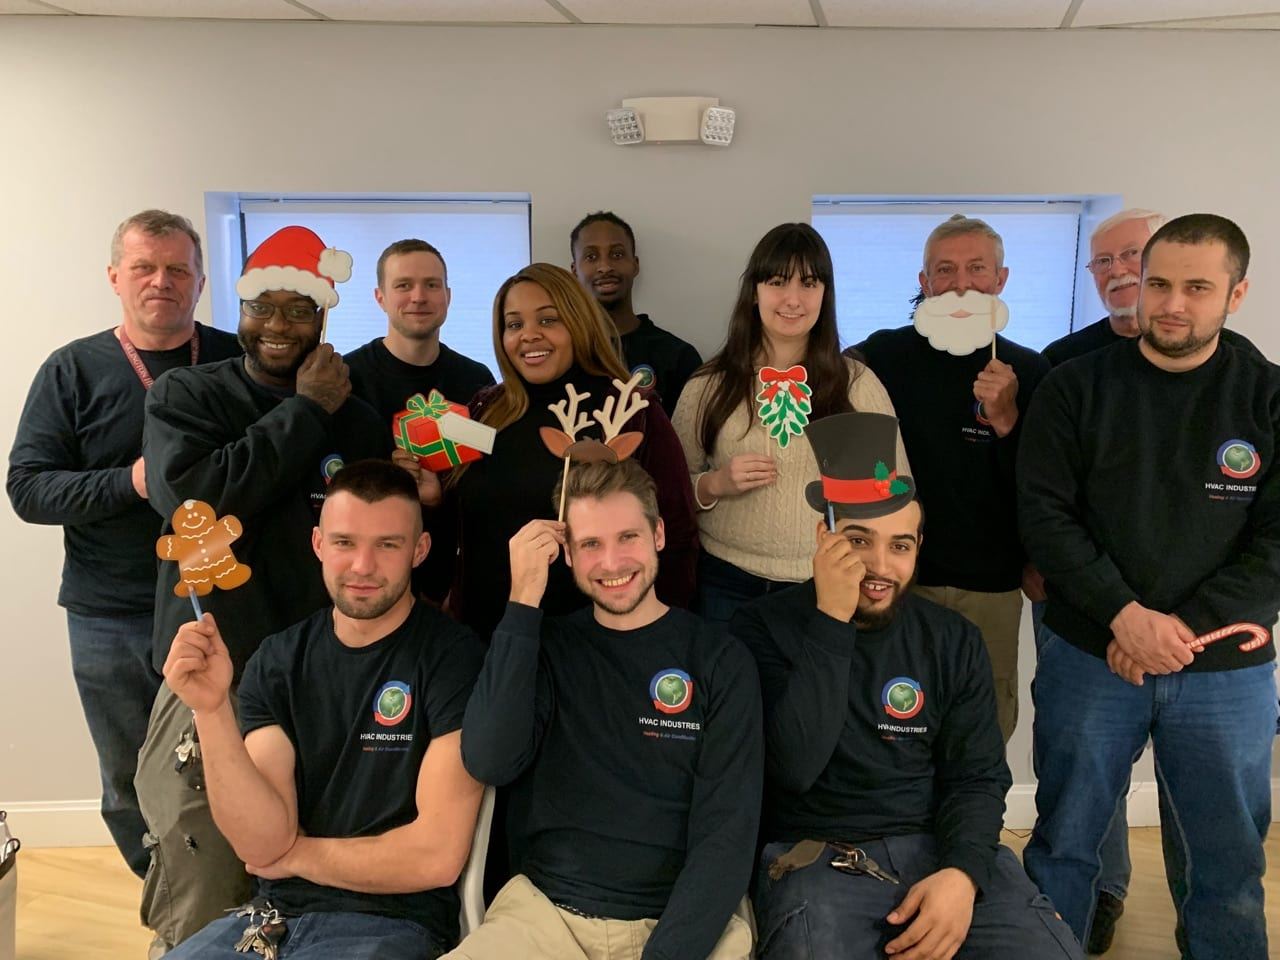 Happy Holidays from HVAC Industries